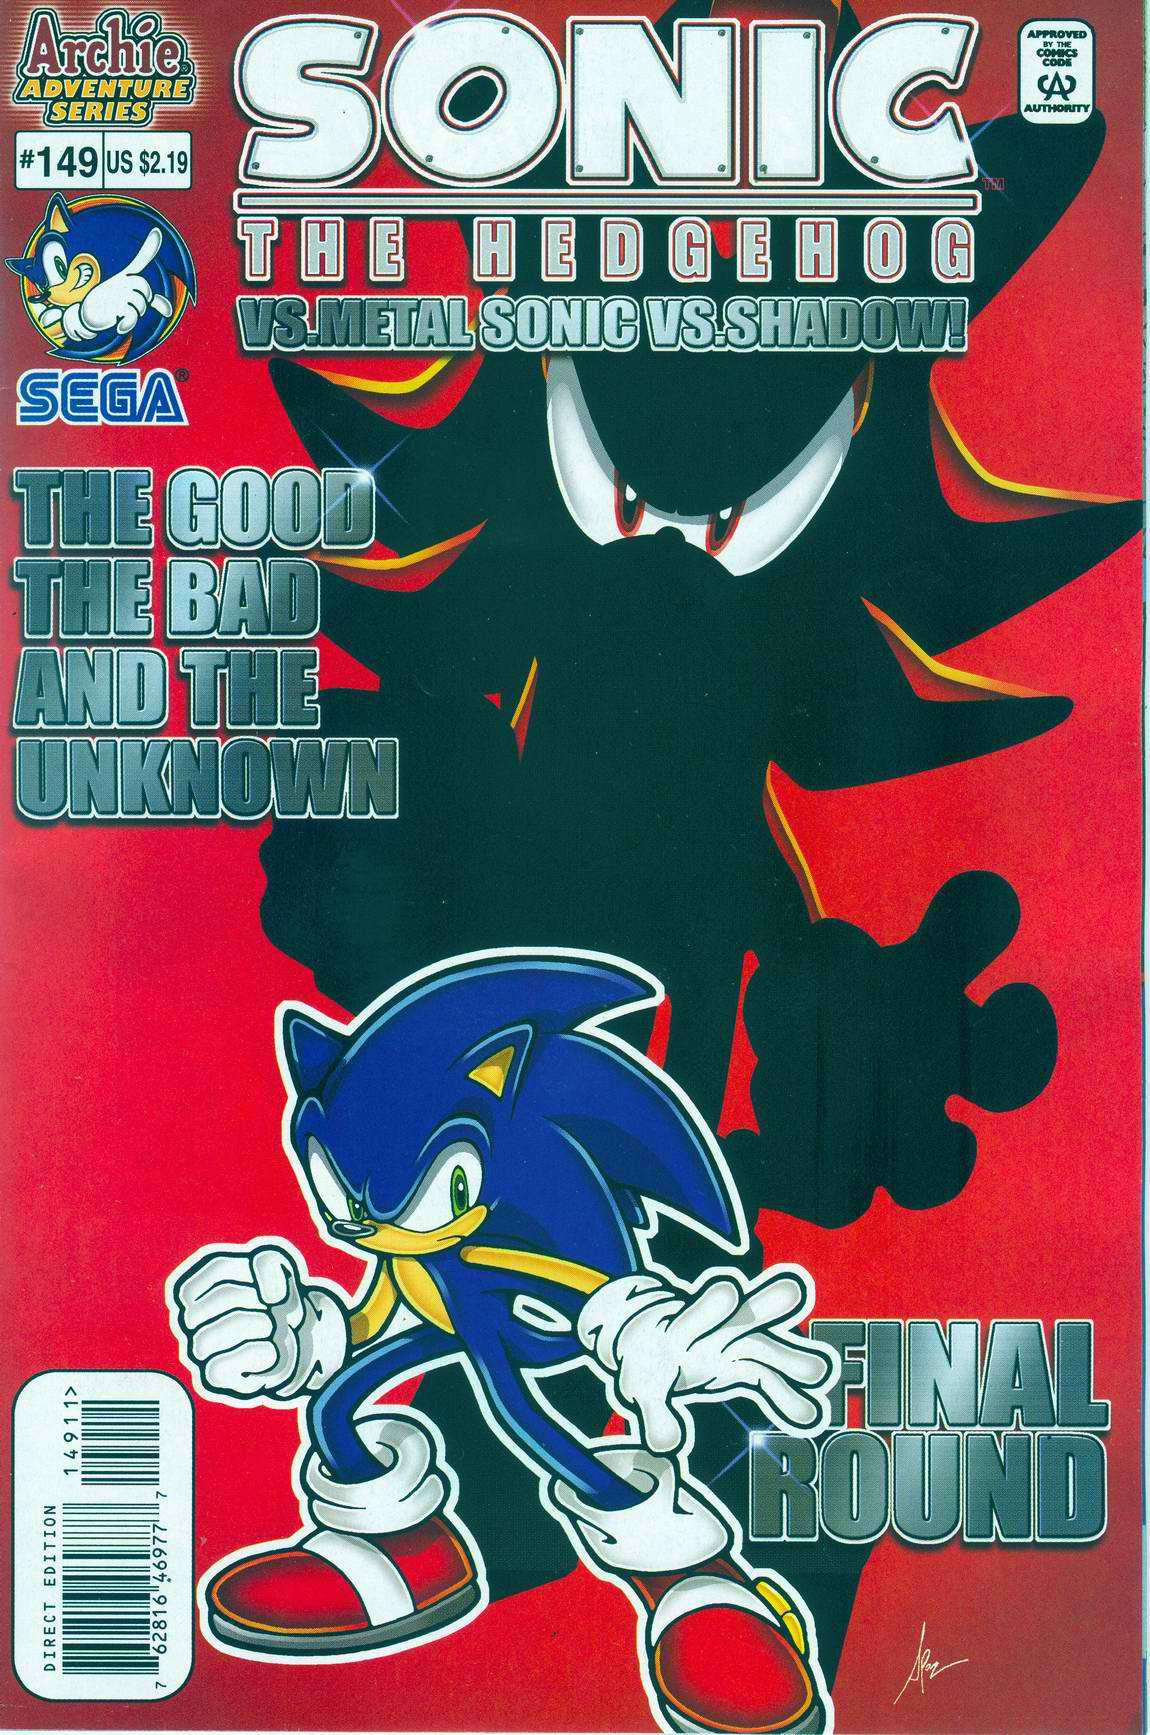 Sonic - Archie Adventure Series July 2005 Comic cover page